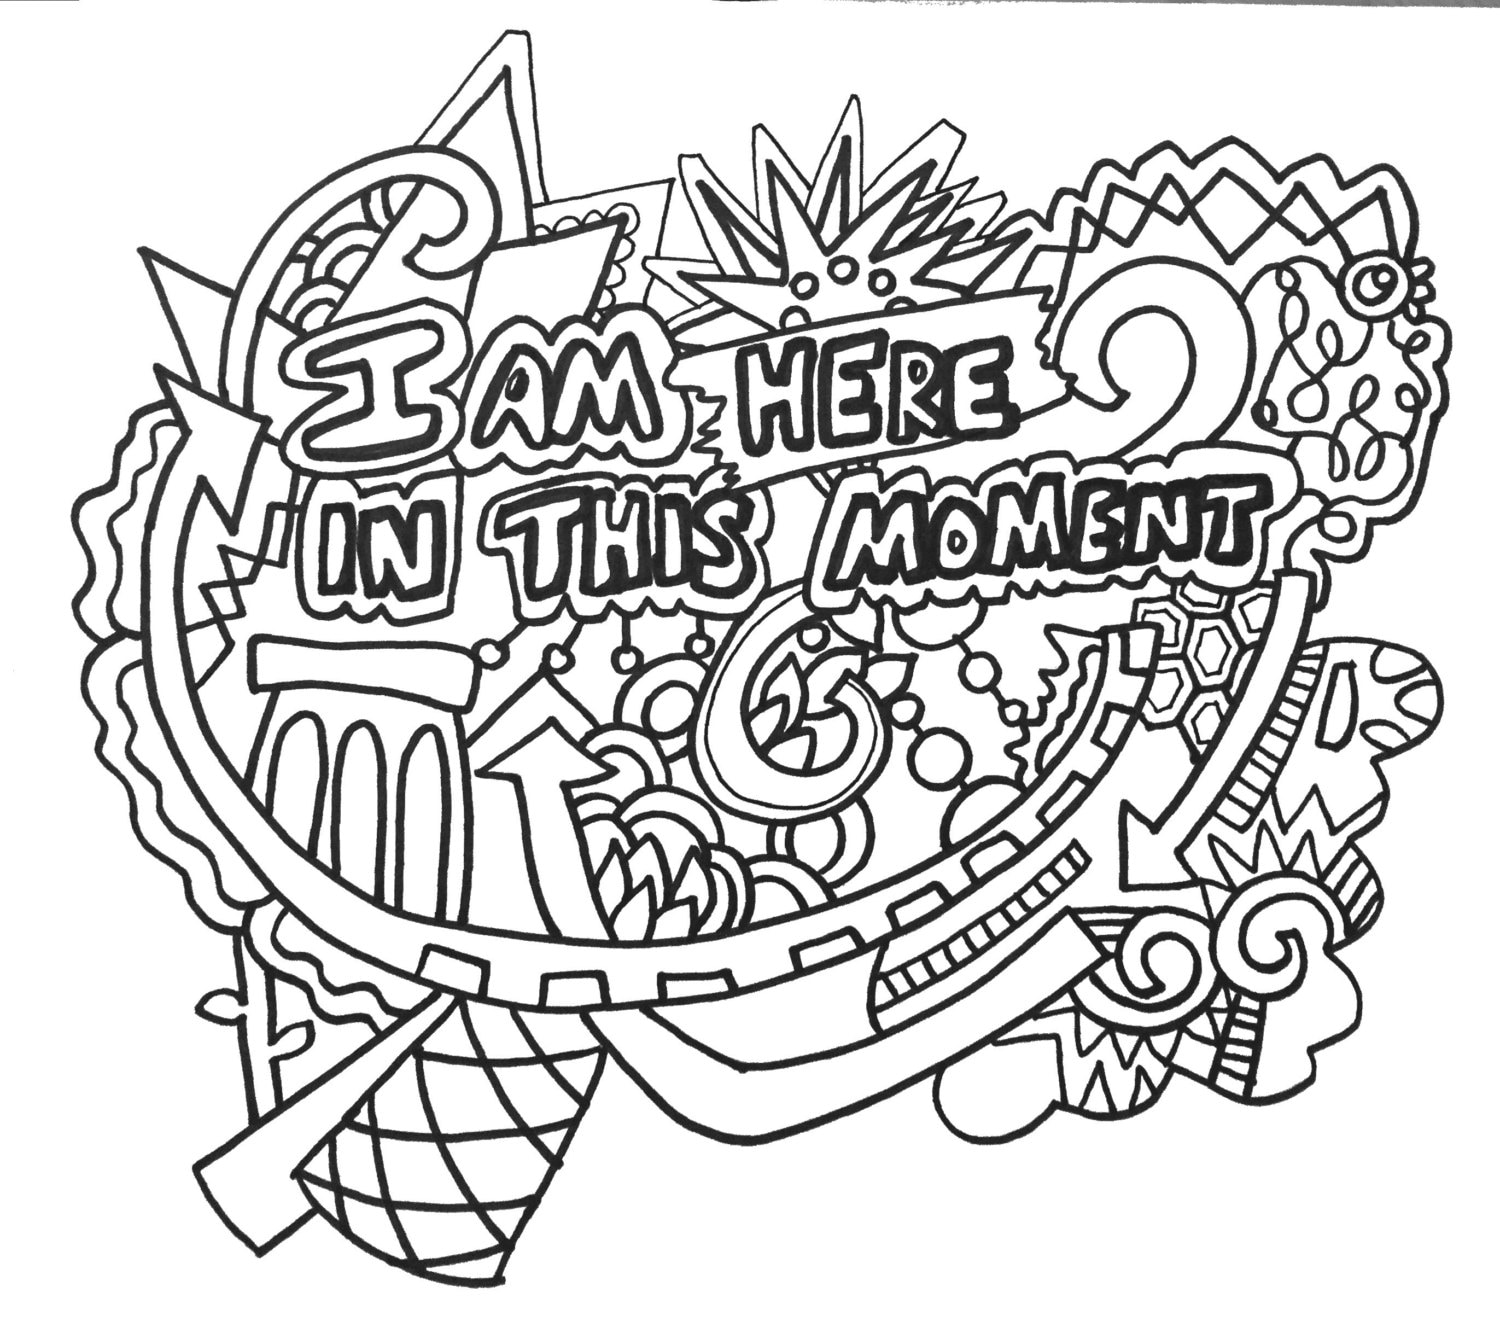 Coloring Pages For Adults: 12 Empowering Affirmations ColoringPages Vol.1 Original Art